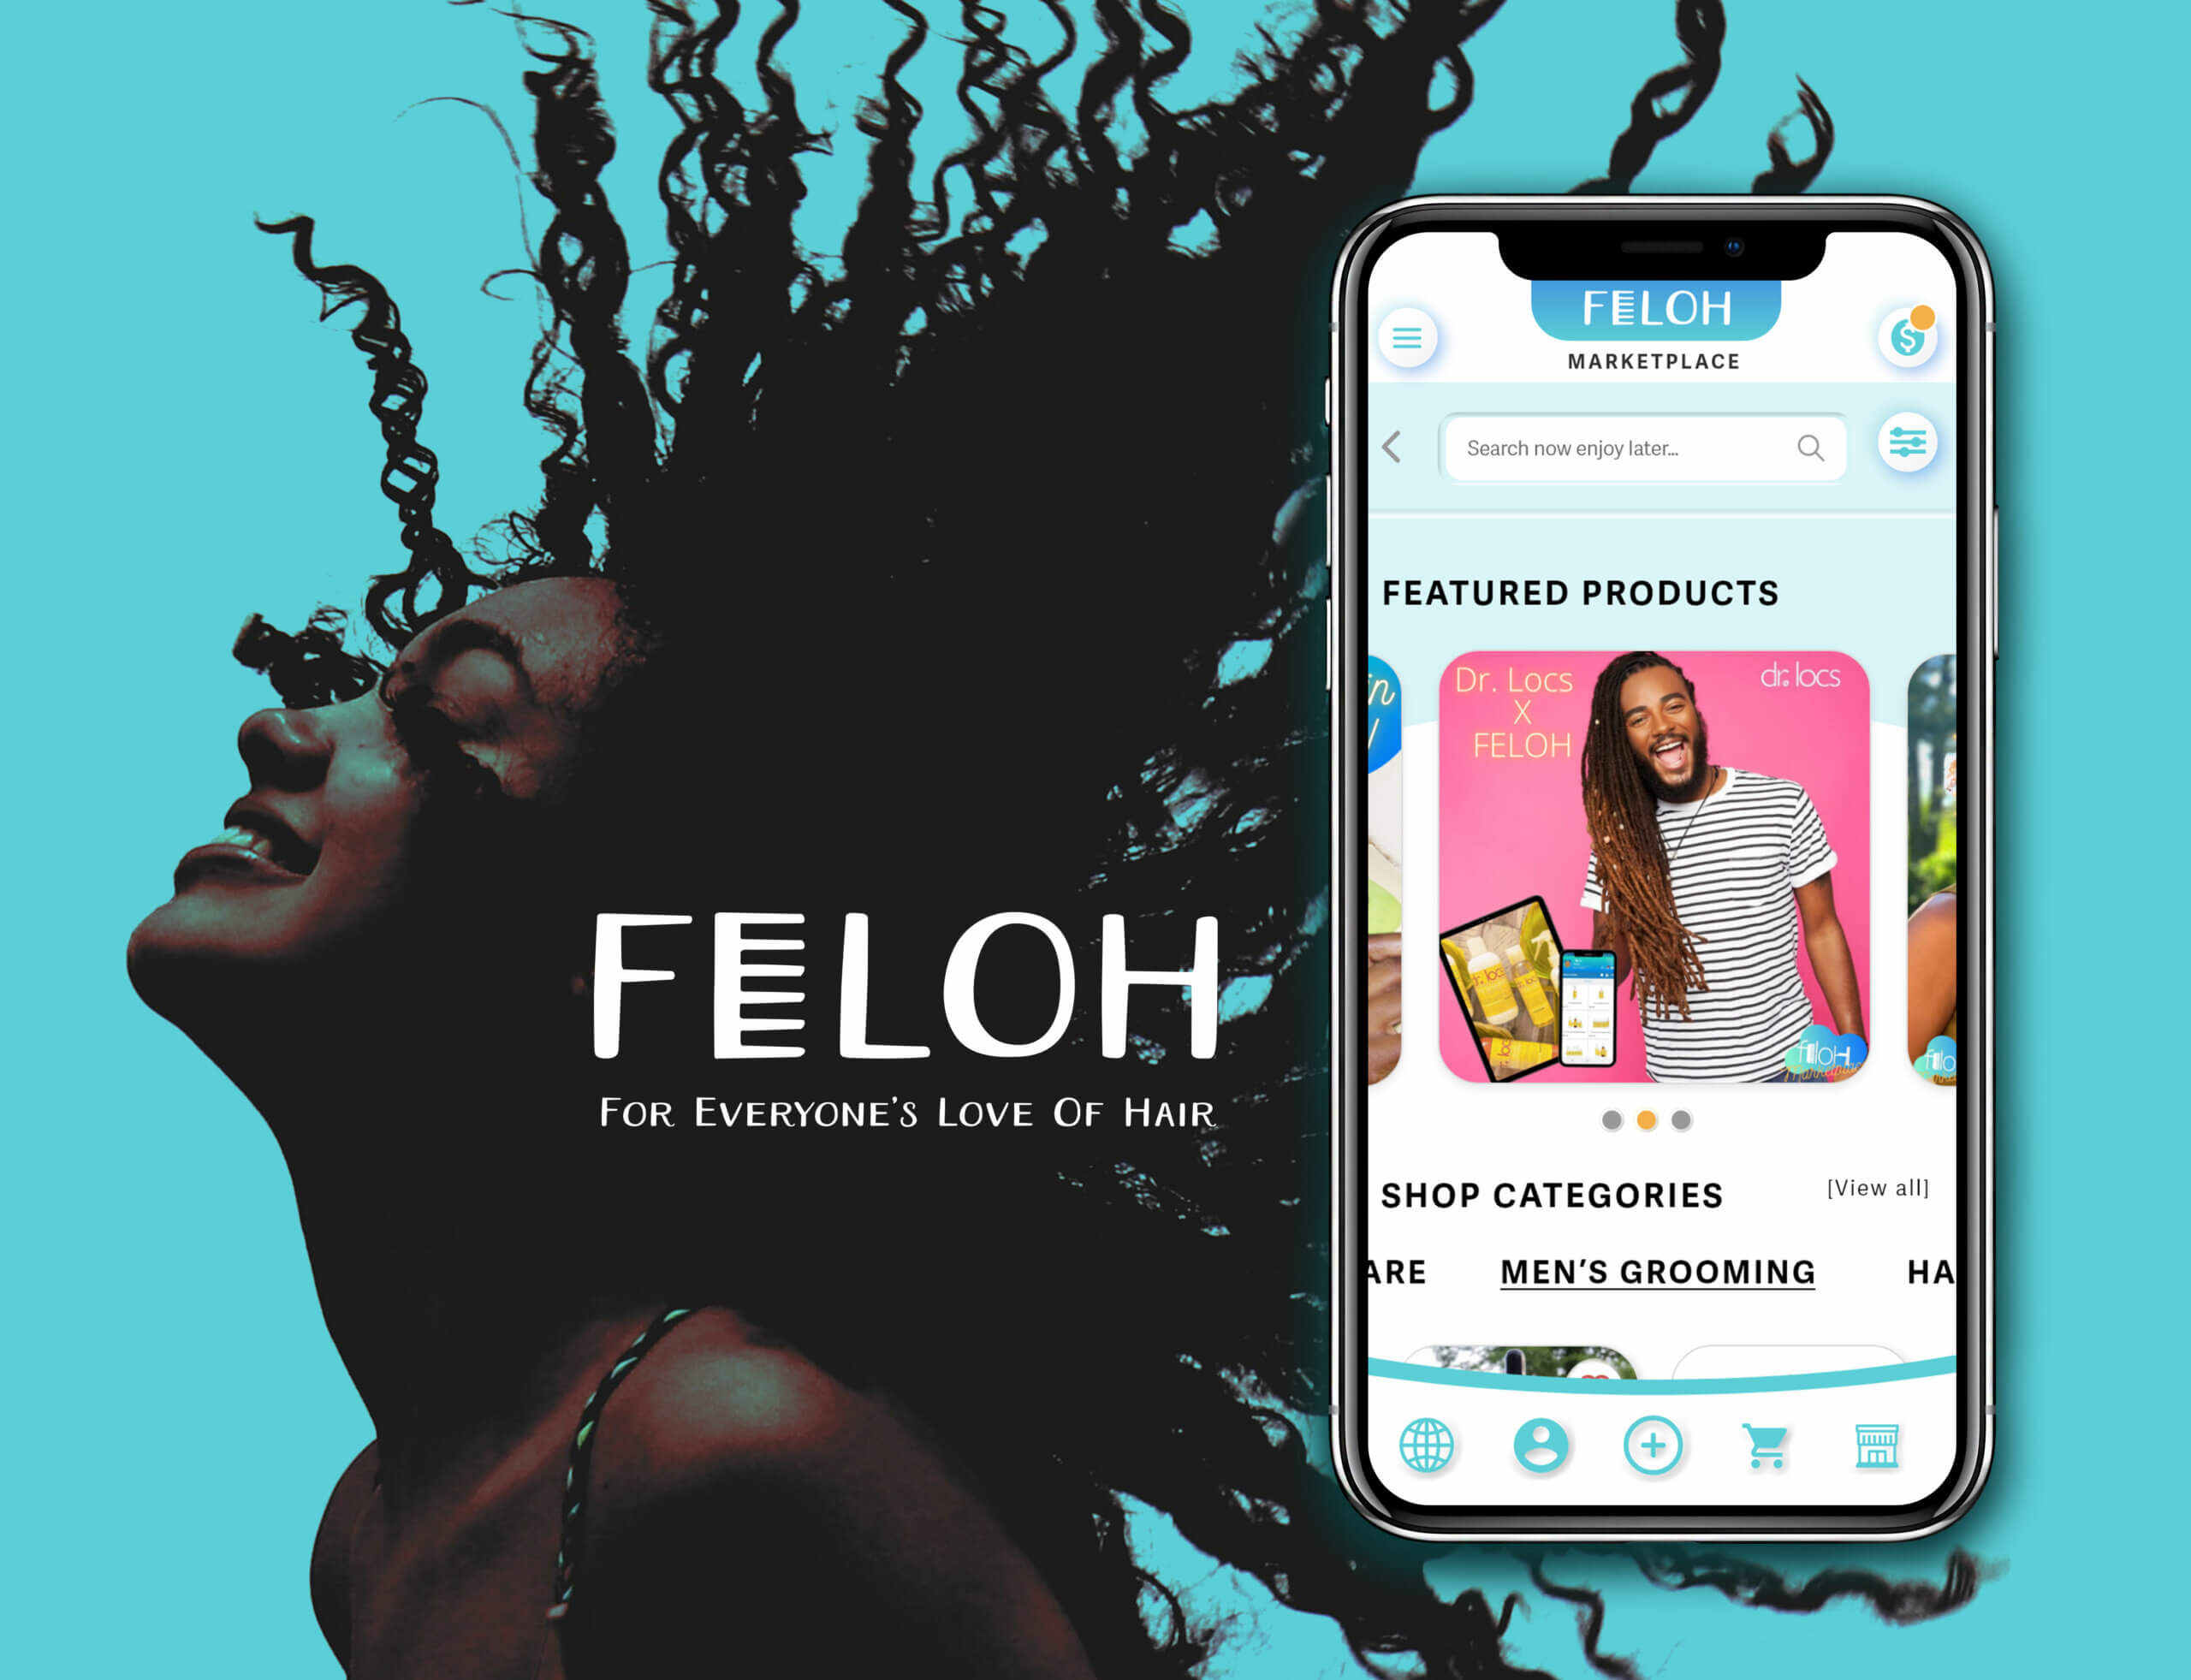 IOS mobile mockup of FELOH hompage with an image of women whipping her curly natural hair back on a light blue background